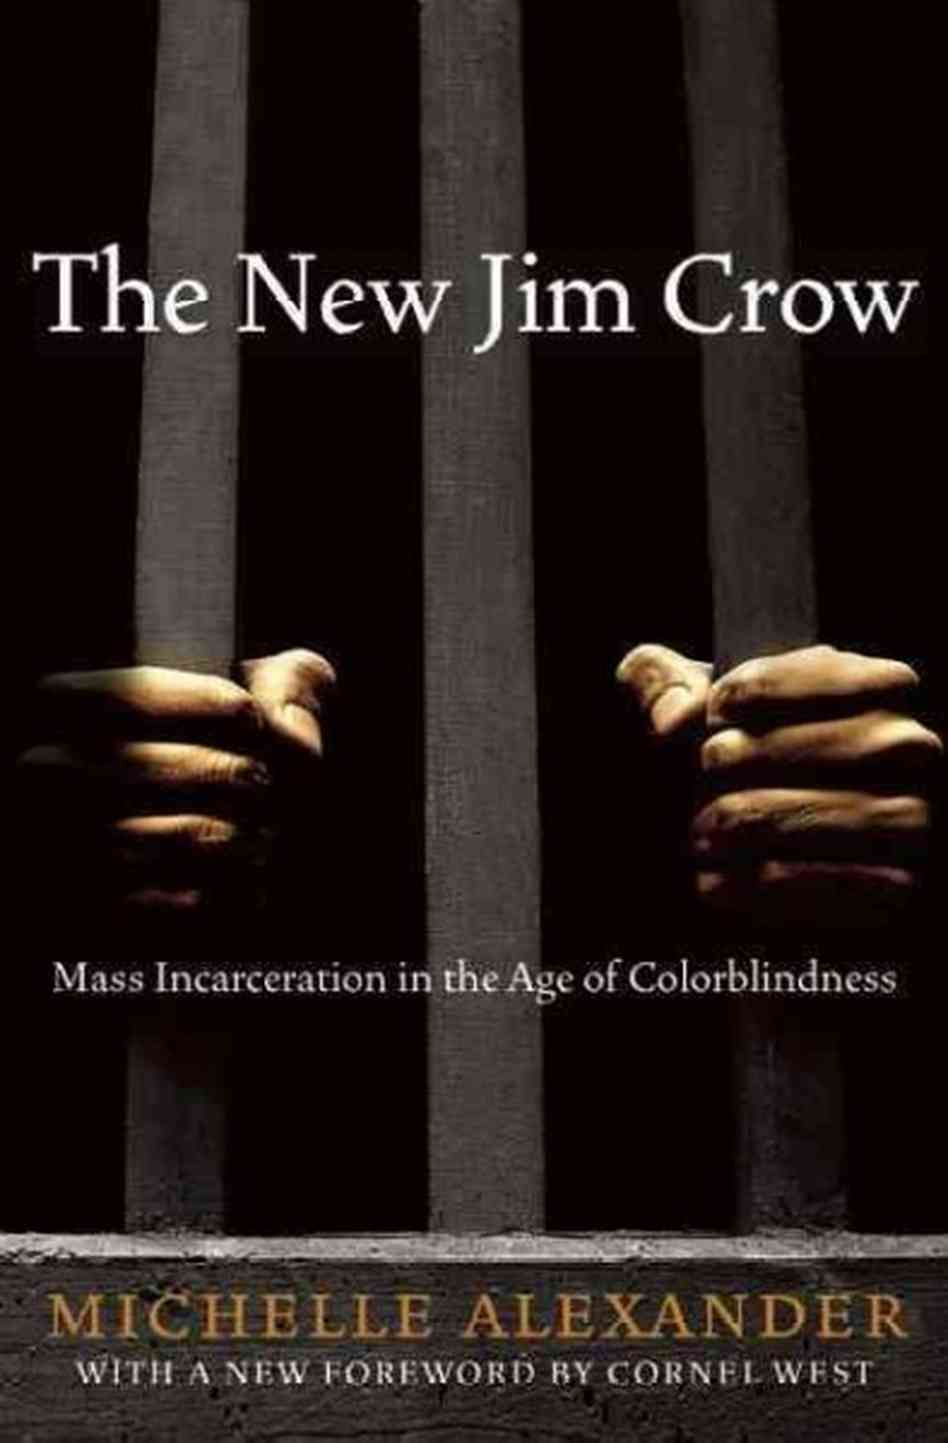 a review of the new jim crow a book by michelle alexander Buy the new jim crow by michelle alexander from waterstones today   michelle alexander (author) sign in to write a review  publisher: the new  press.